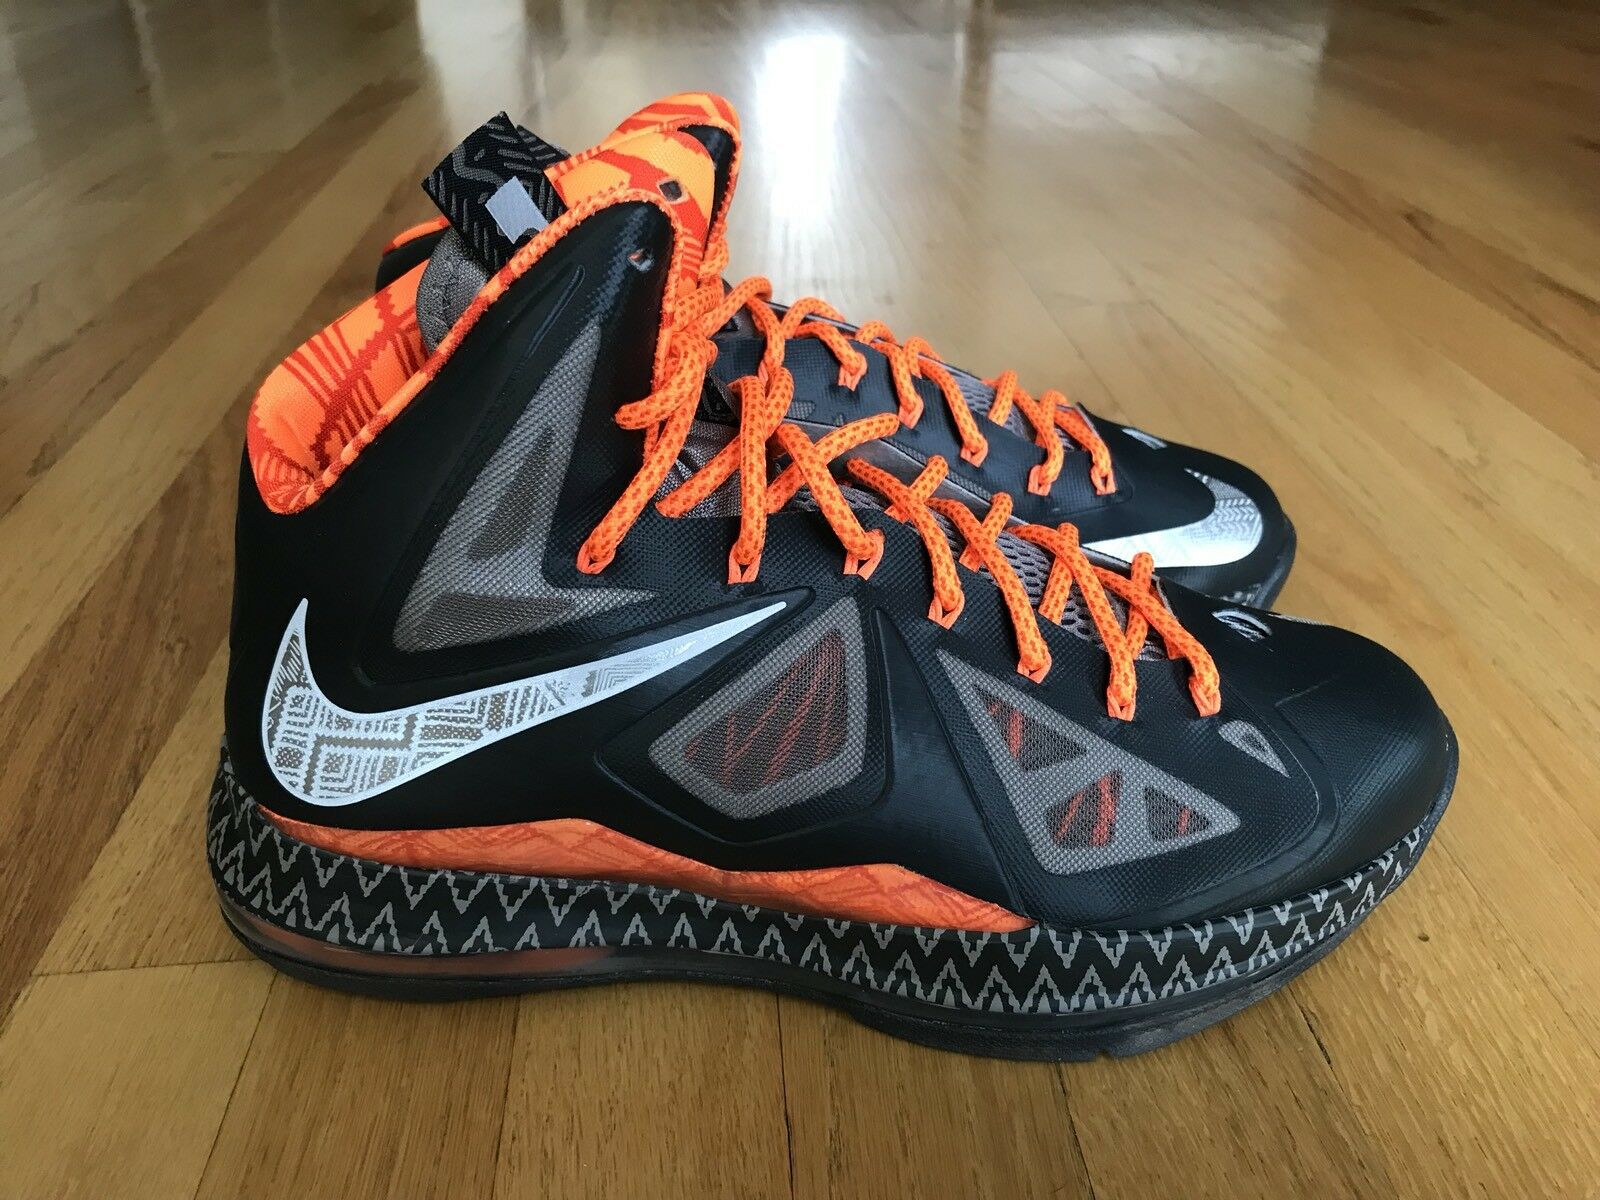 NIKE LEBRON X - BHM BLACK HISTORY MONTH ANTHRACITE SIZE MEN'S 8.5 [583109-001]